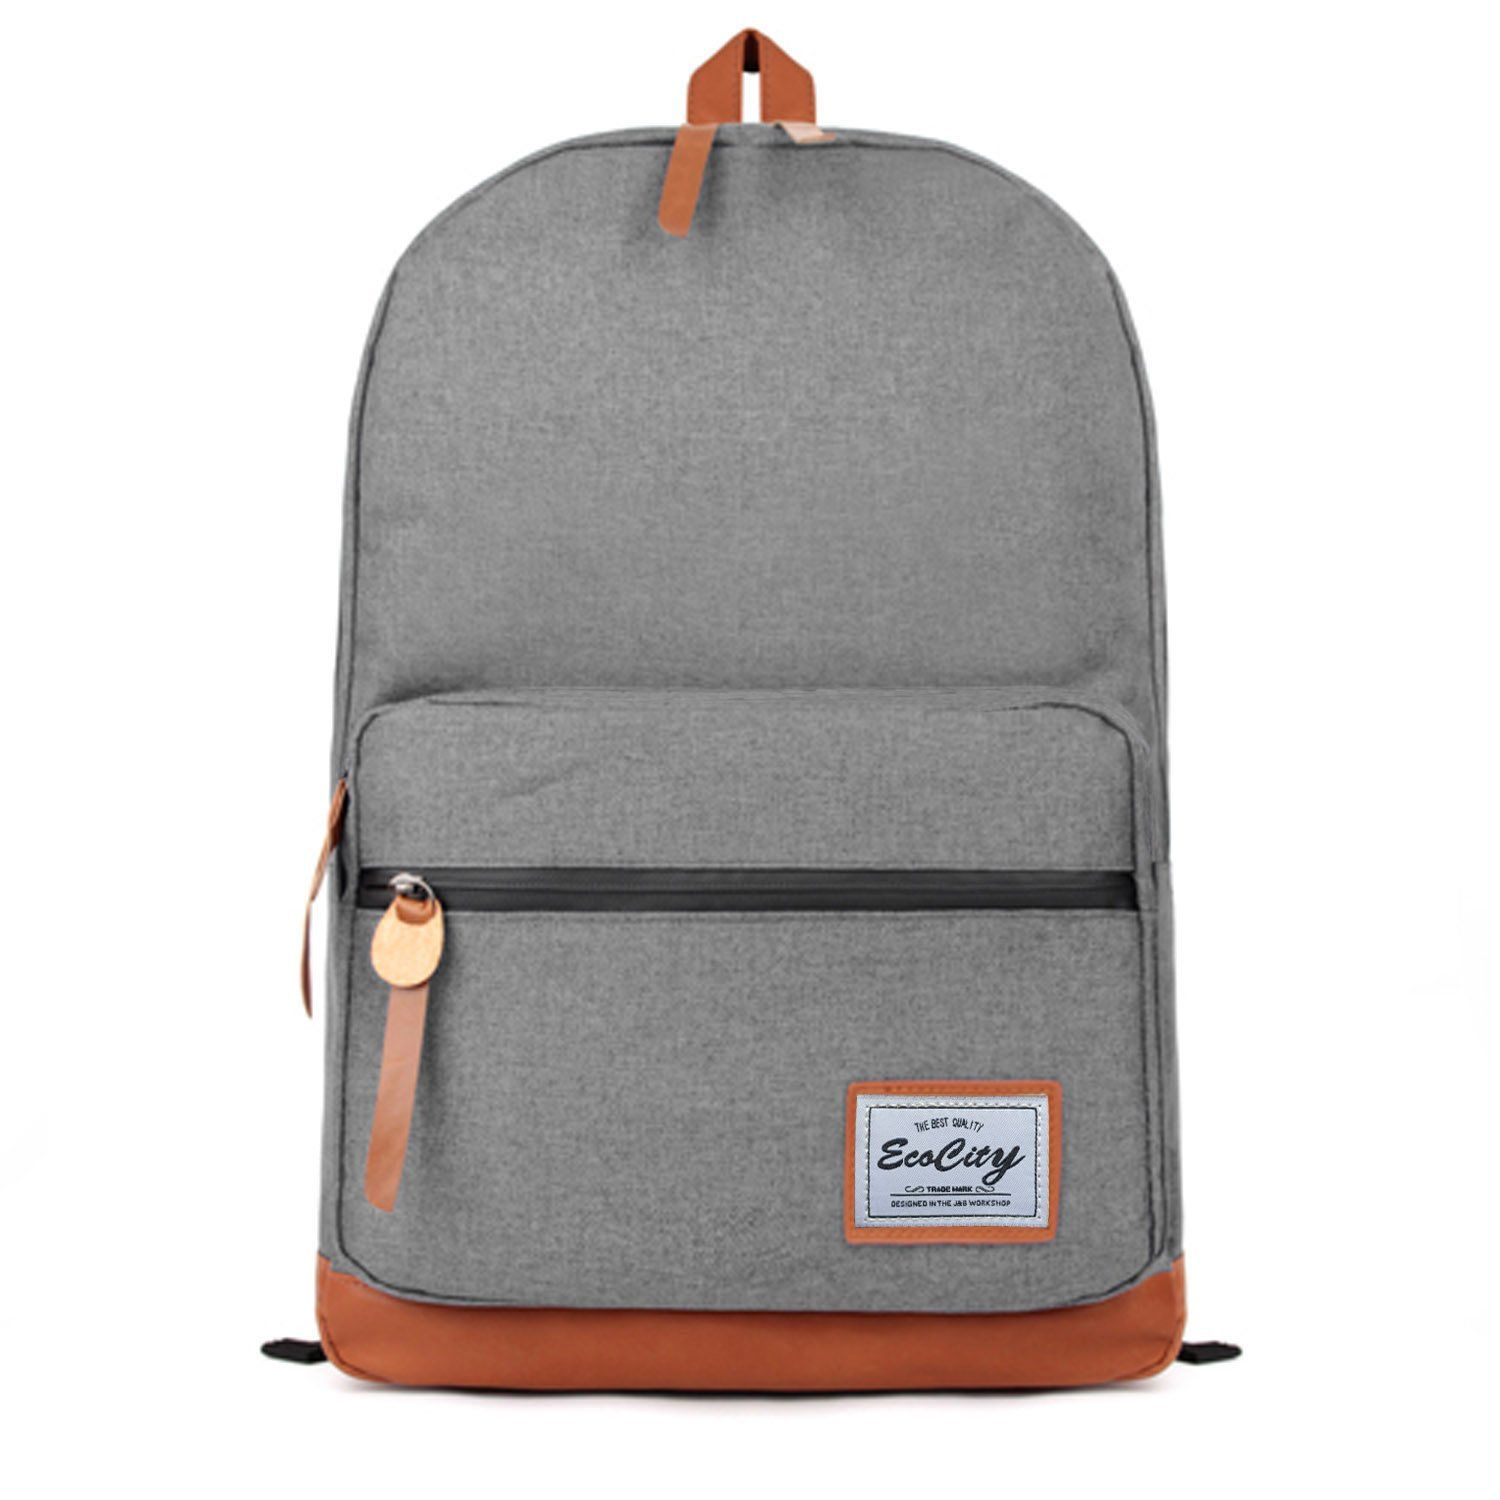 ecocity unixex quality classic back pack vintage style